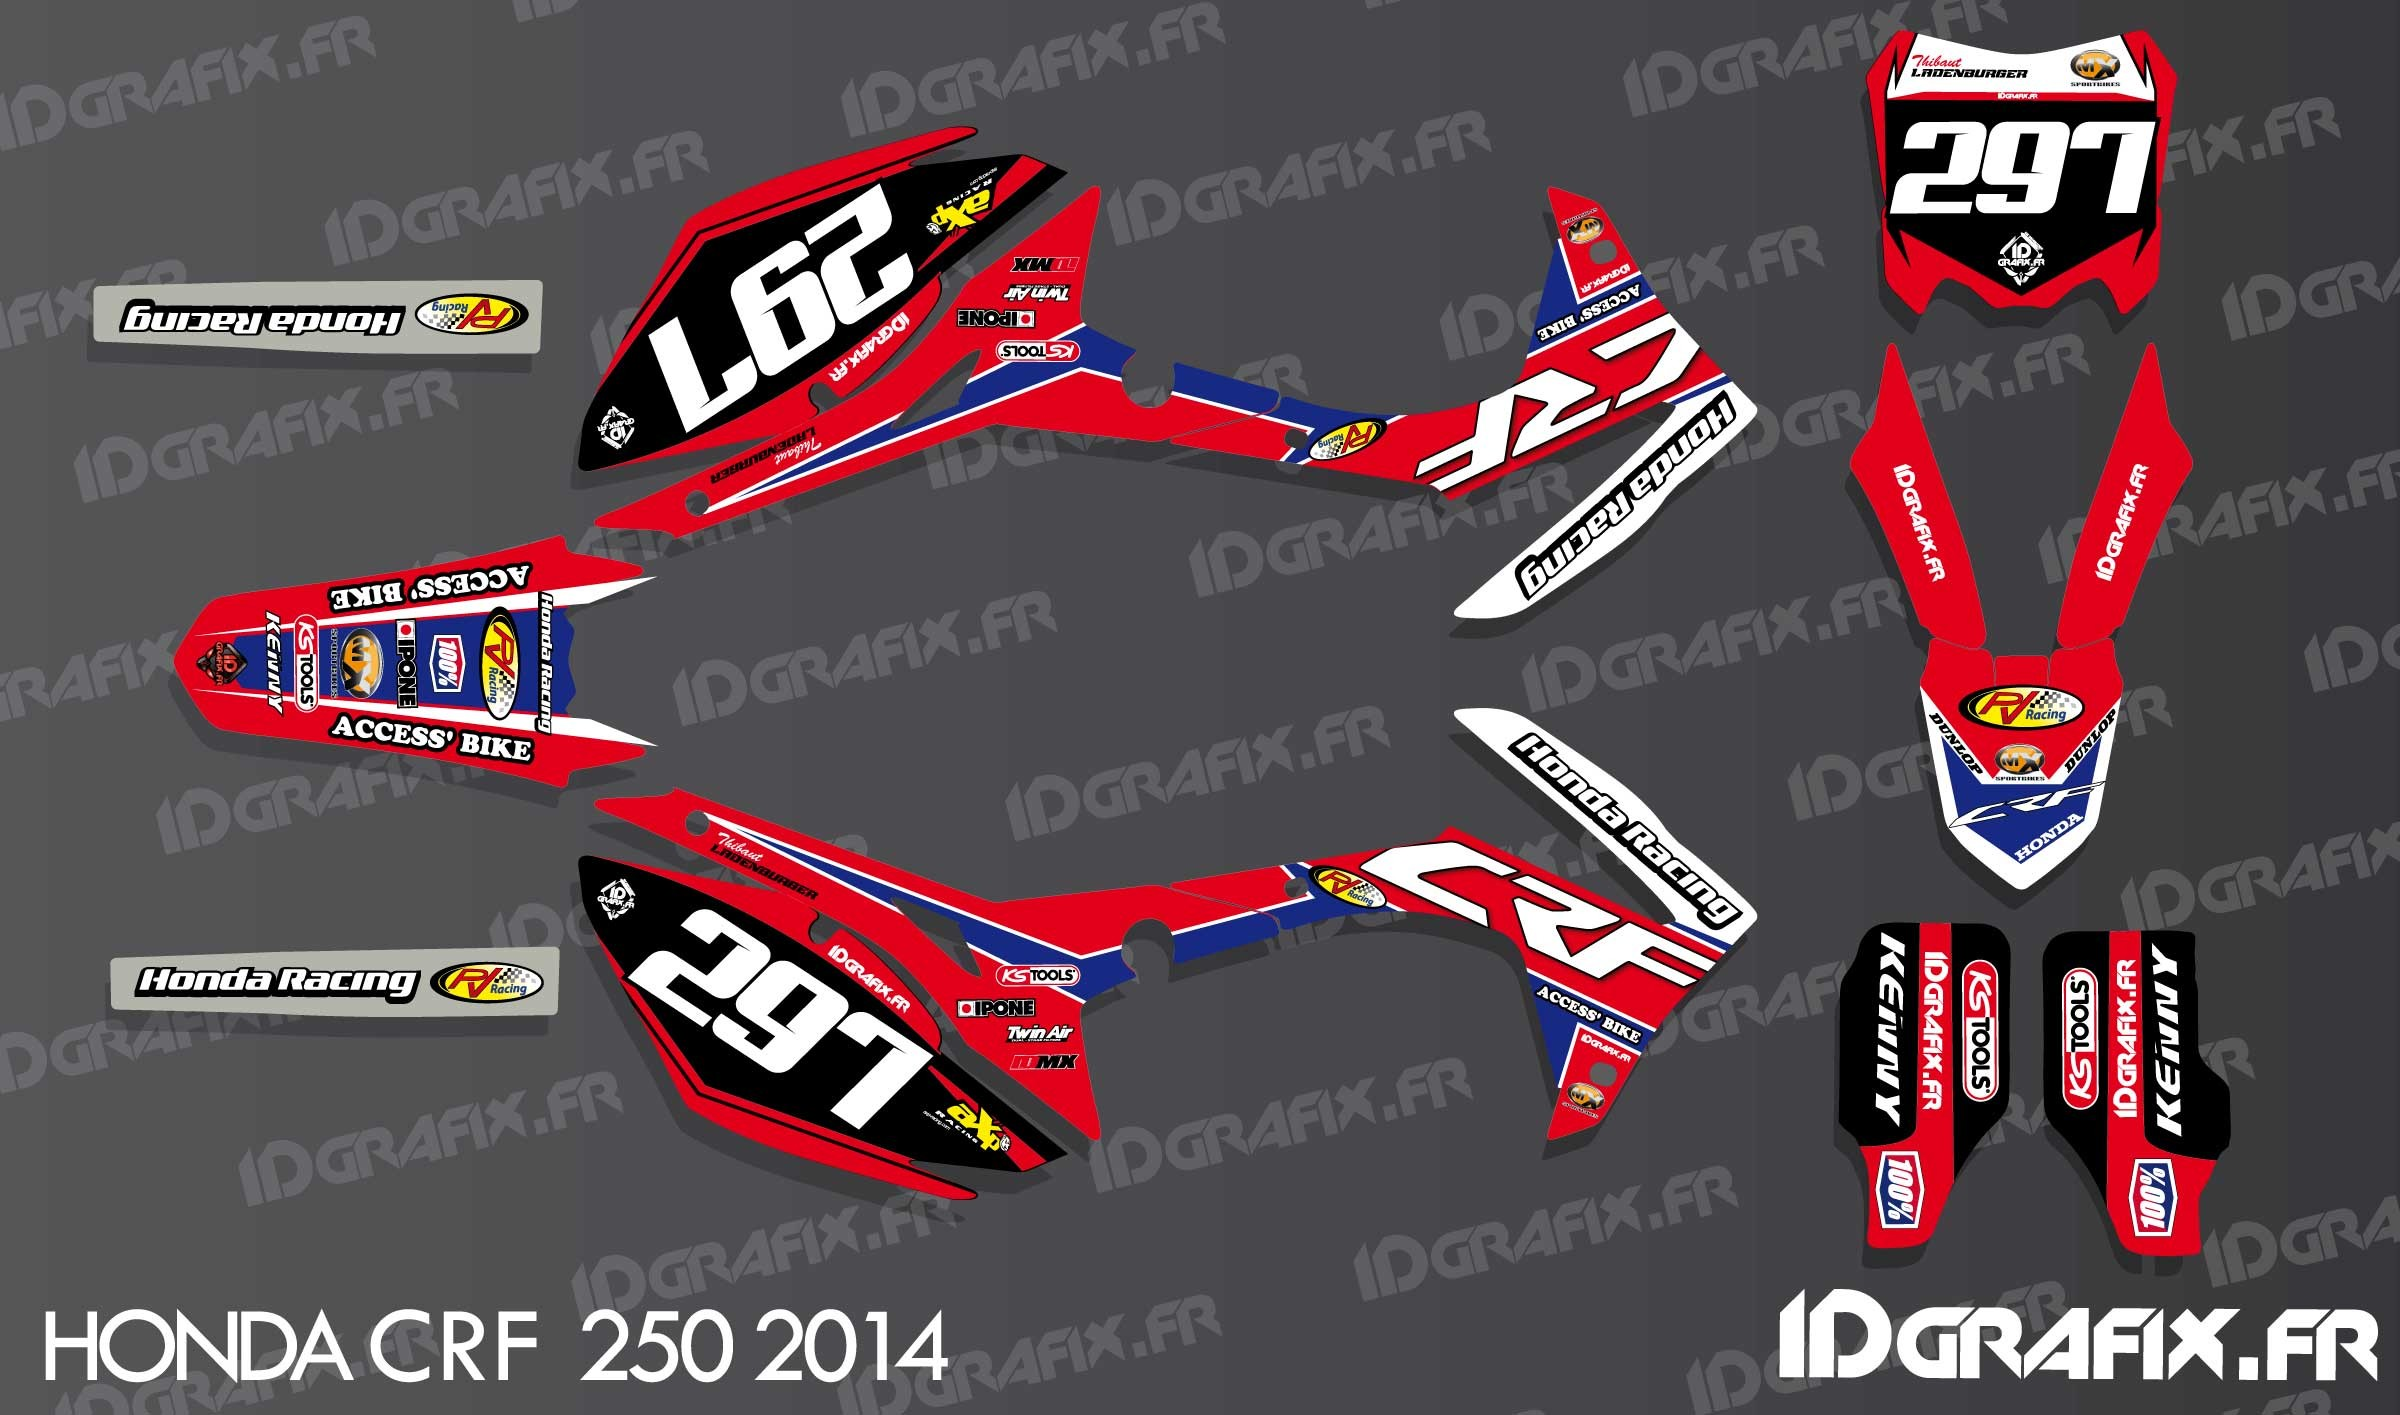 Polaris Outlaw 50 >> Kit dekor CRF Replikat - Honda CR/CRF 125-250-450 - idgrafix